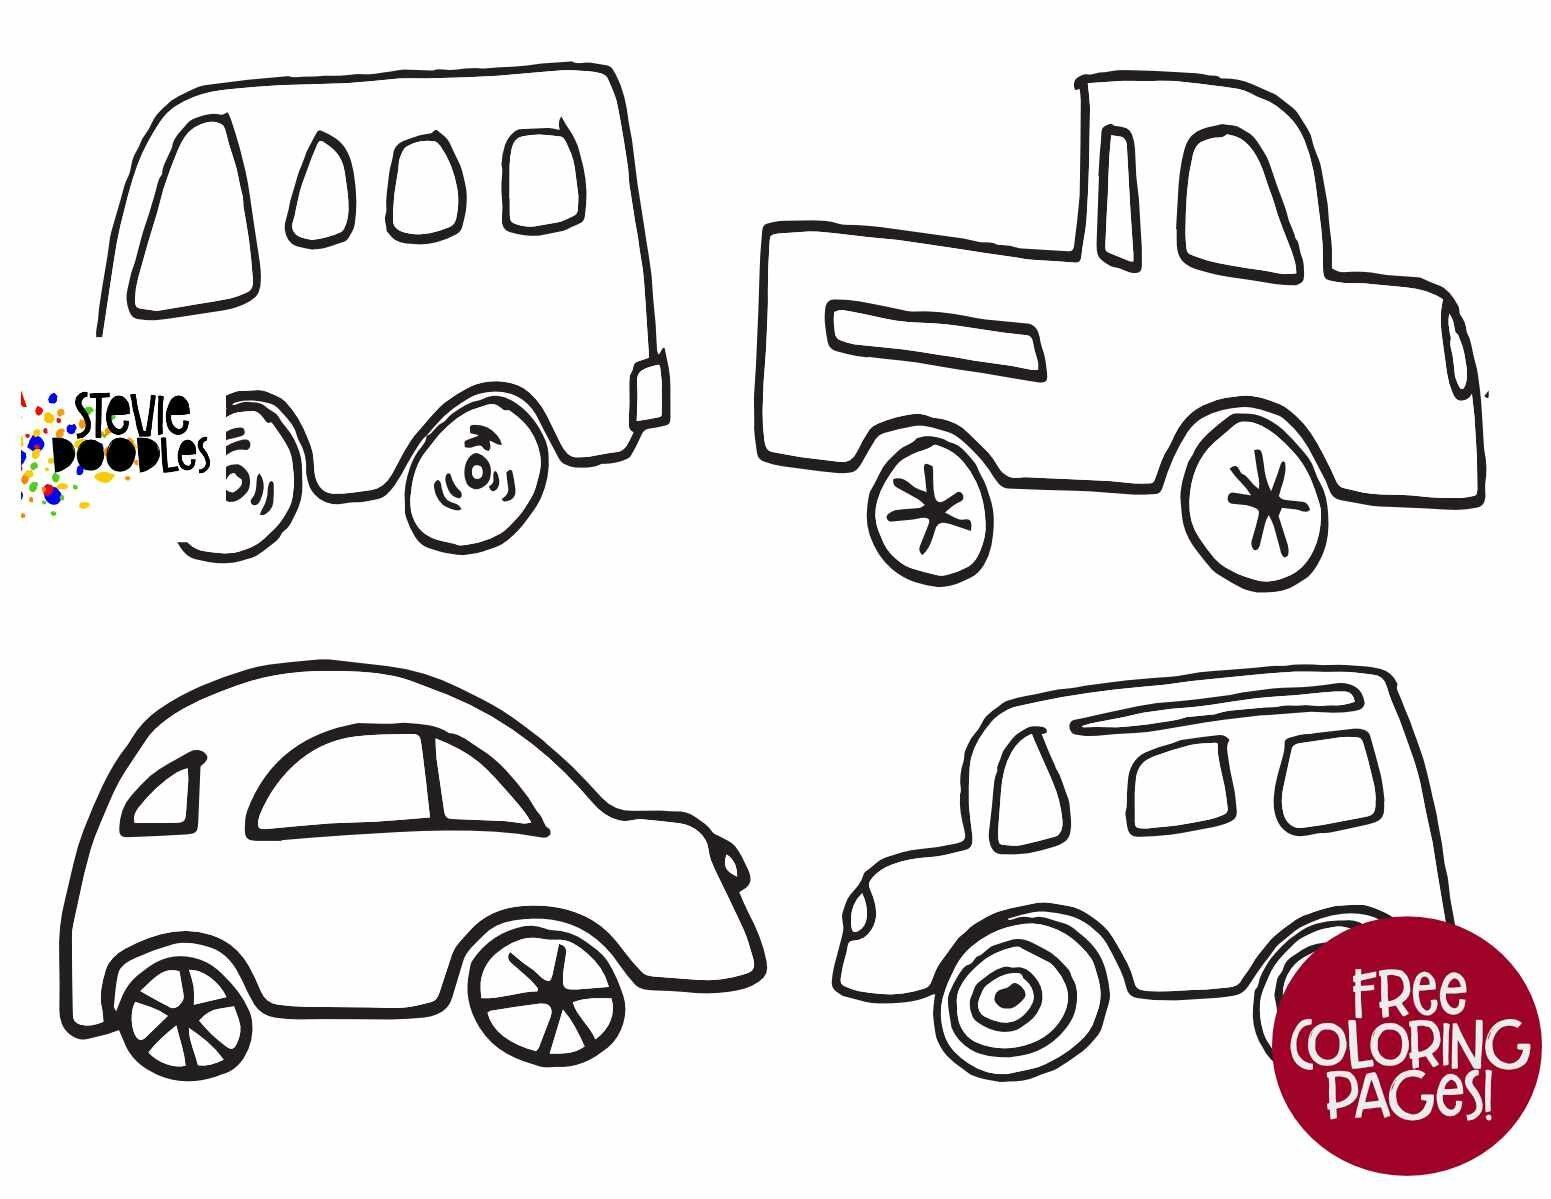 4 Little Cars Free Printable Coloring Page 5 Stevie Doodles Free Printable Coloring Pages Coloring Pages Printable Coloring Pages